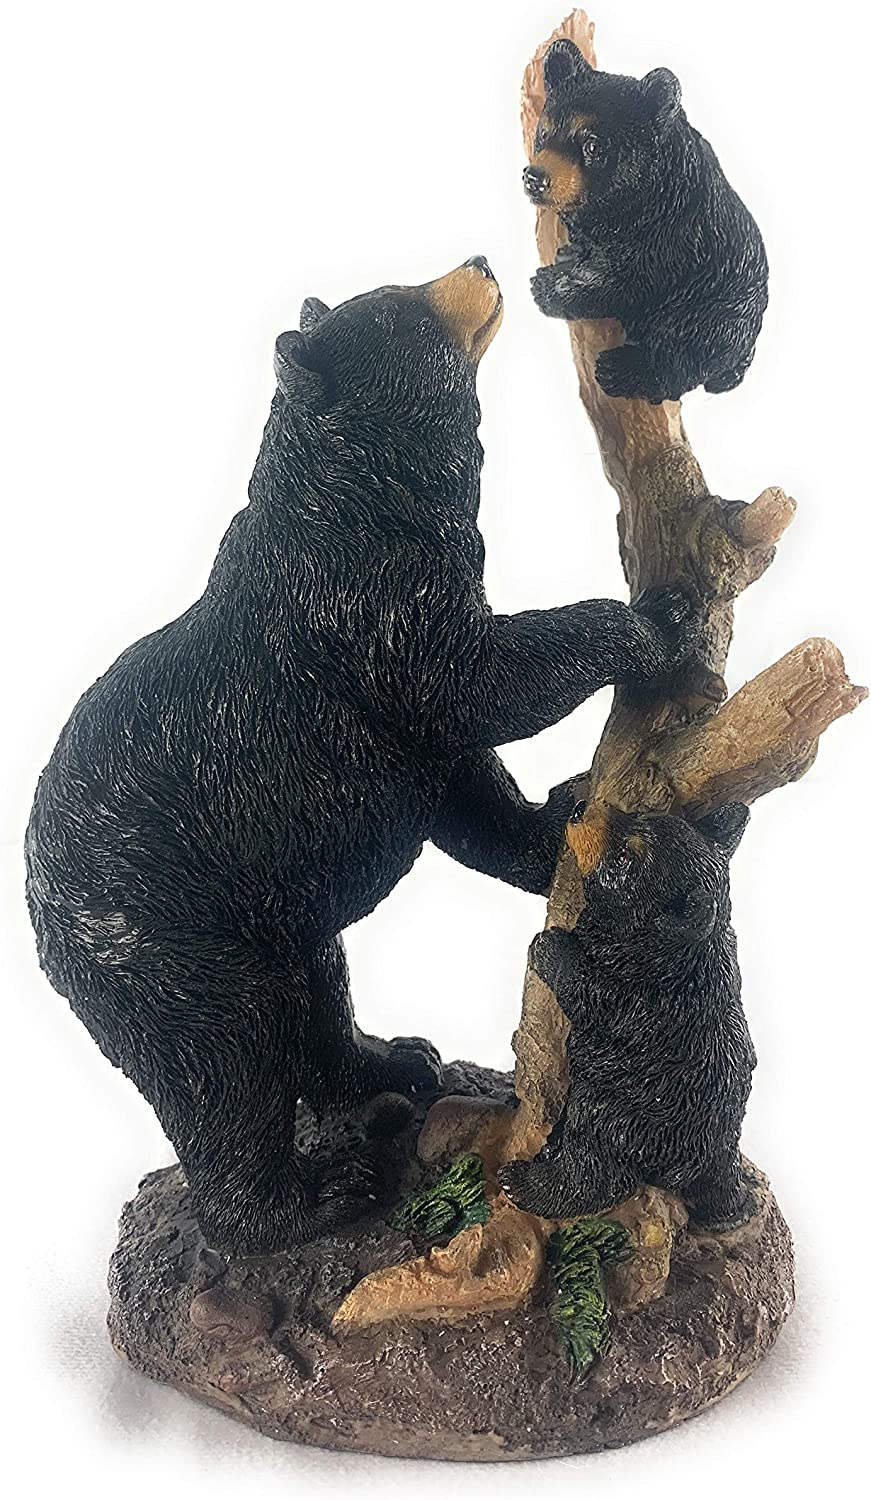 GSC Mother Bear Playing with Cubs on Tree Decor Collectible Figurine Statue, 10.5x5.5X4.25 inches